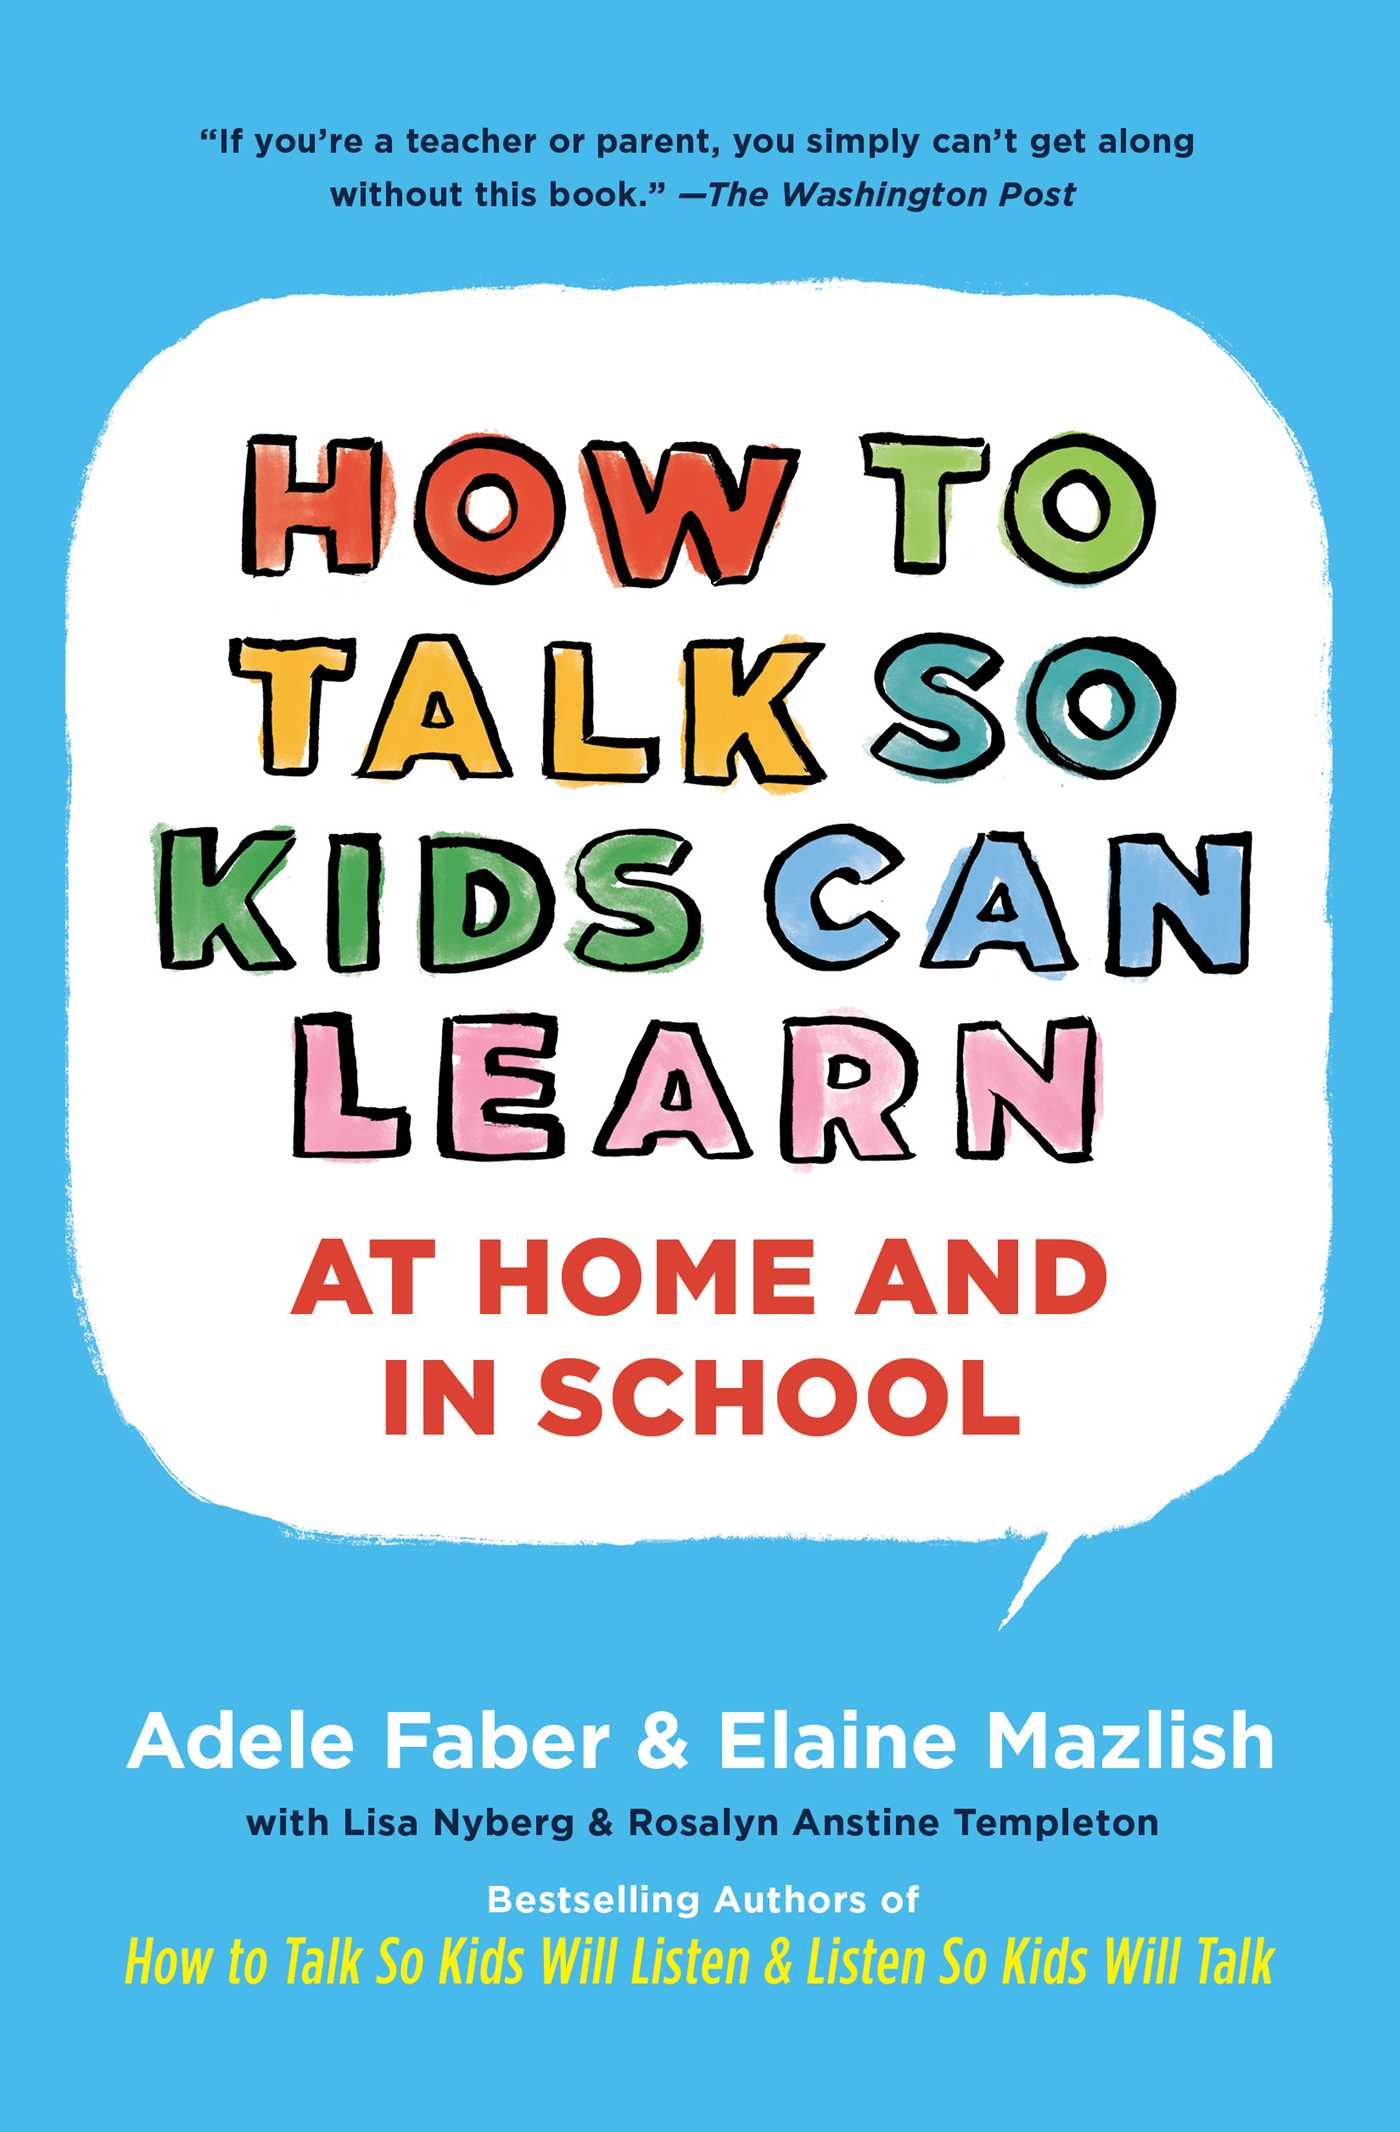 How-to-talk-so-kids-can-learn-9780684824727_hr